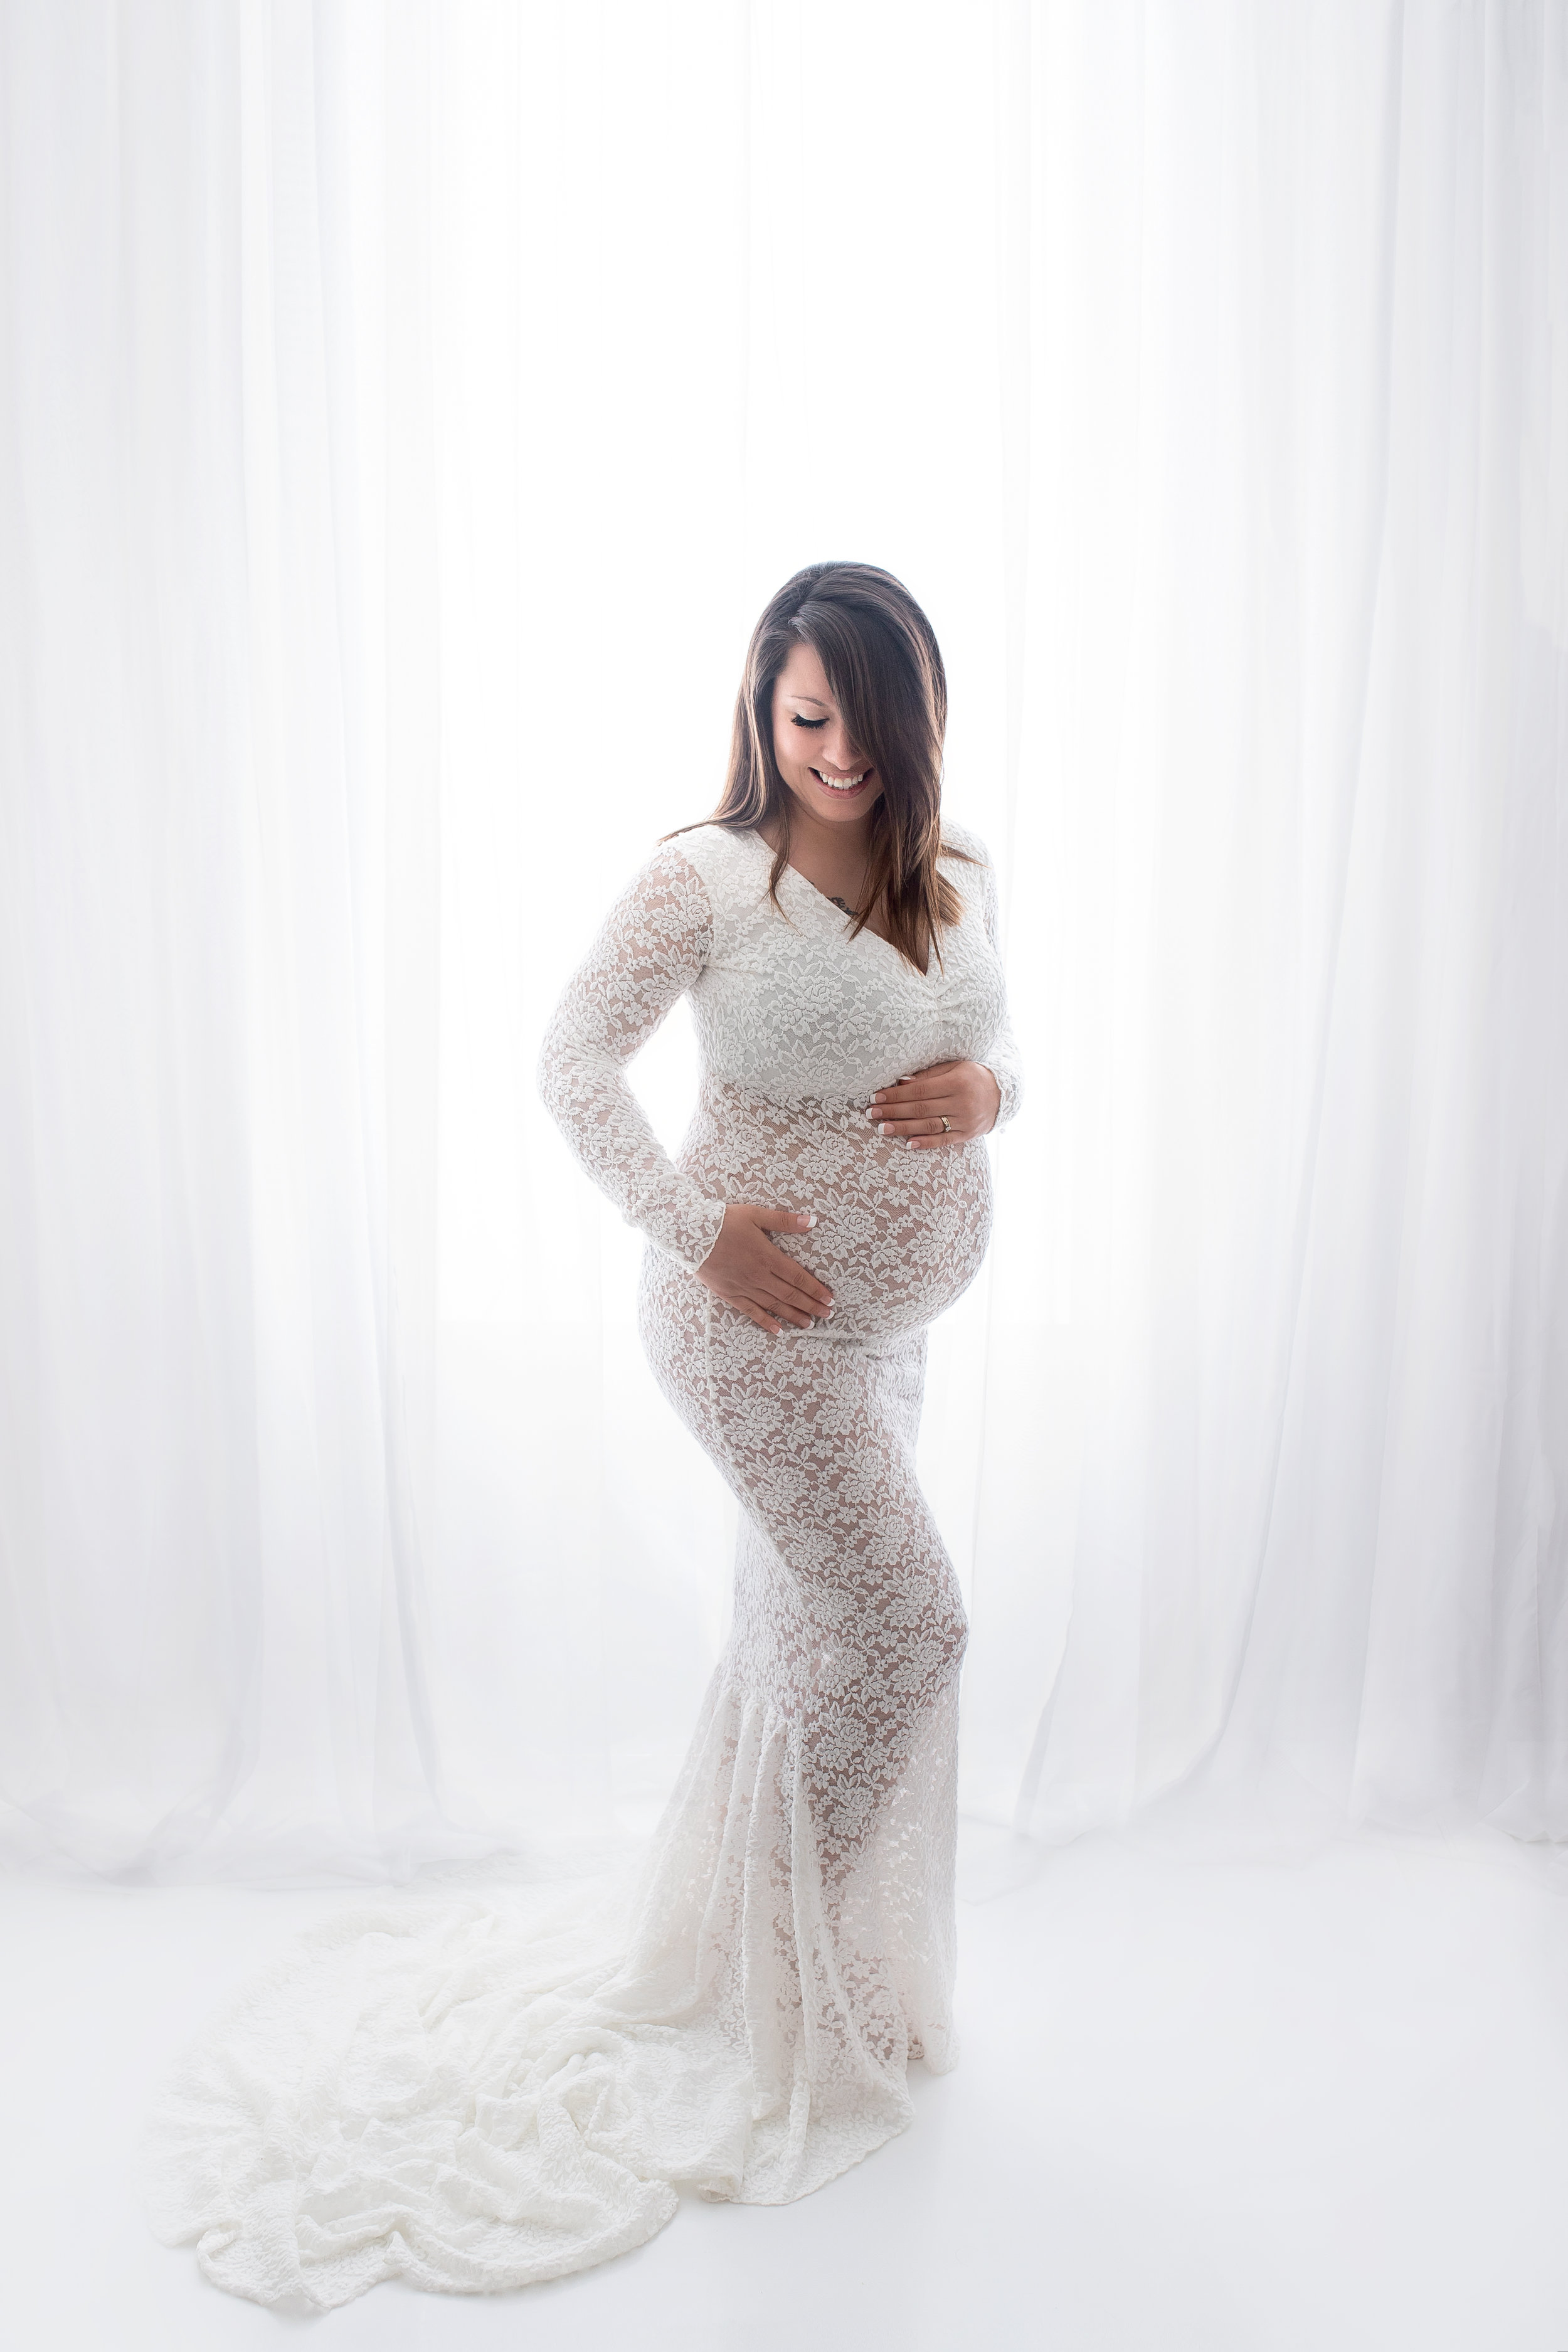 best maternity photographer edmonton free maternity session st-albert blooming bliss photography